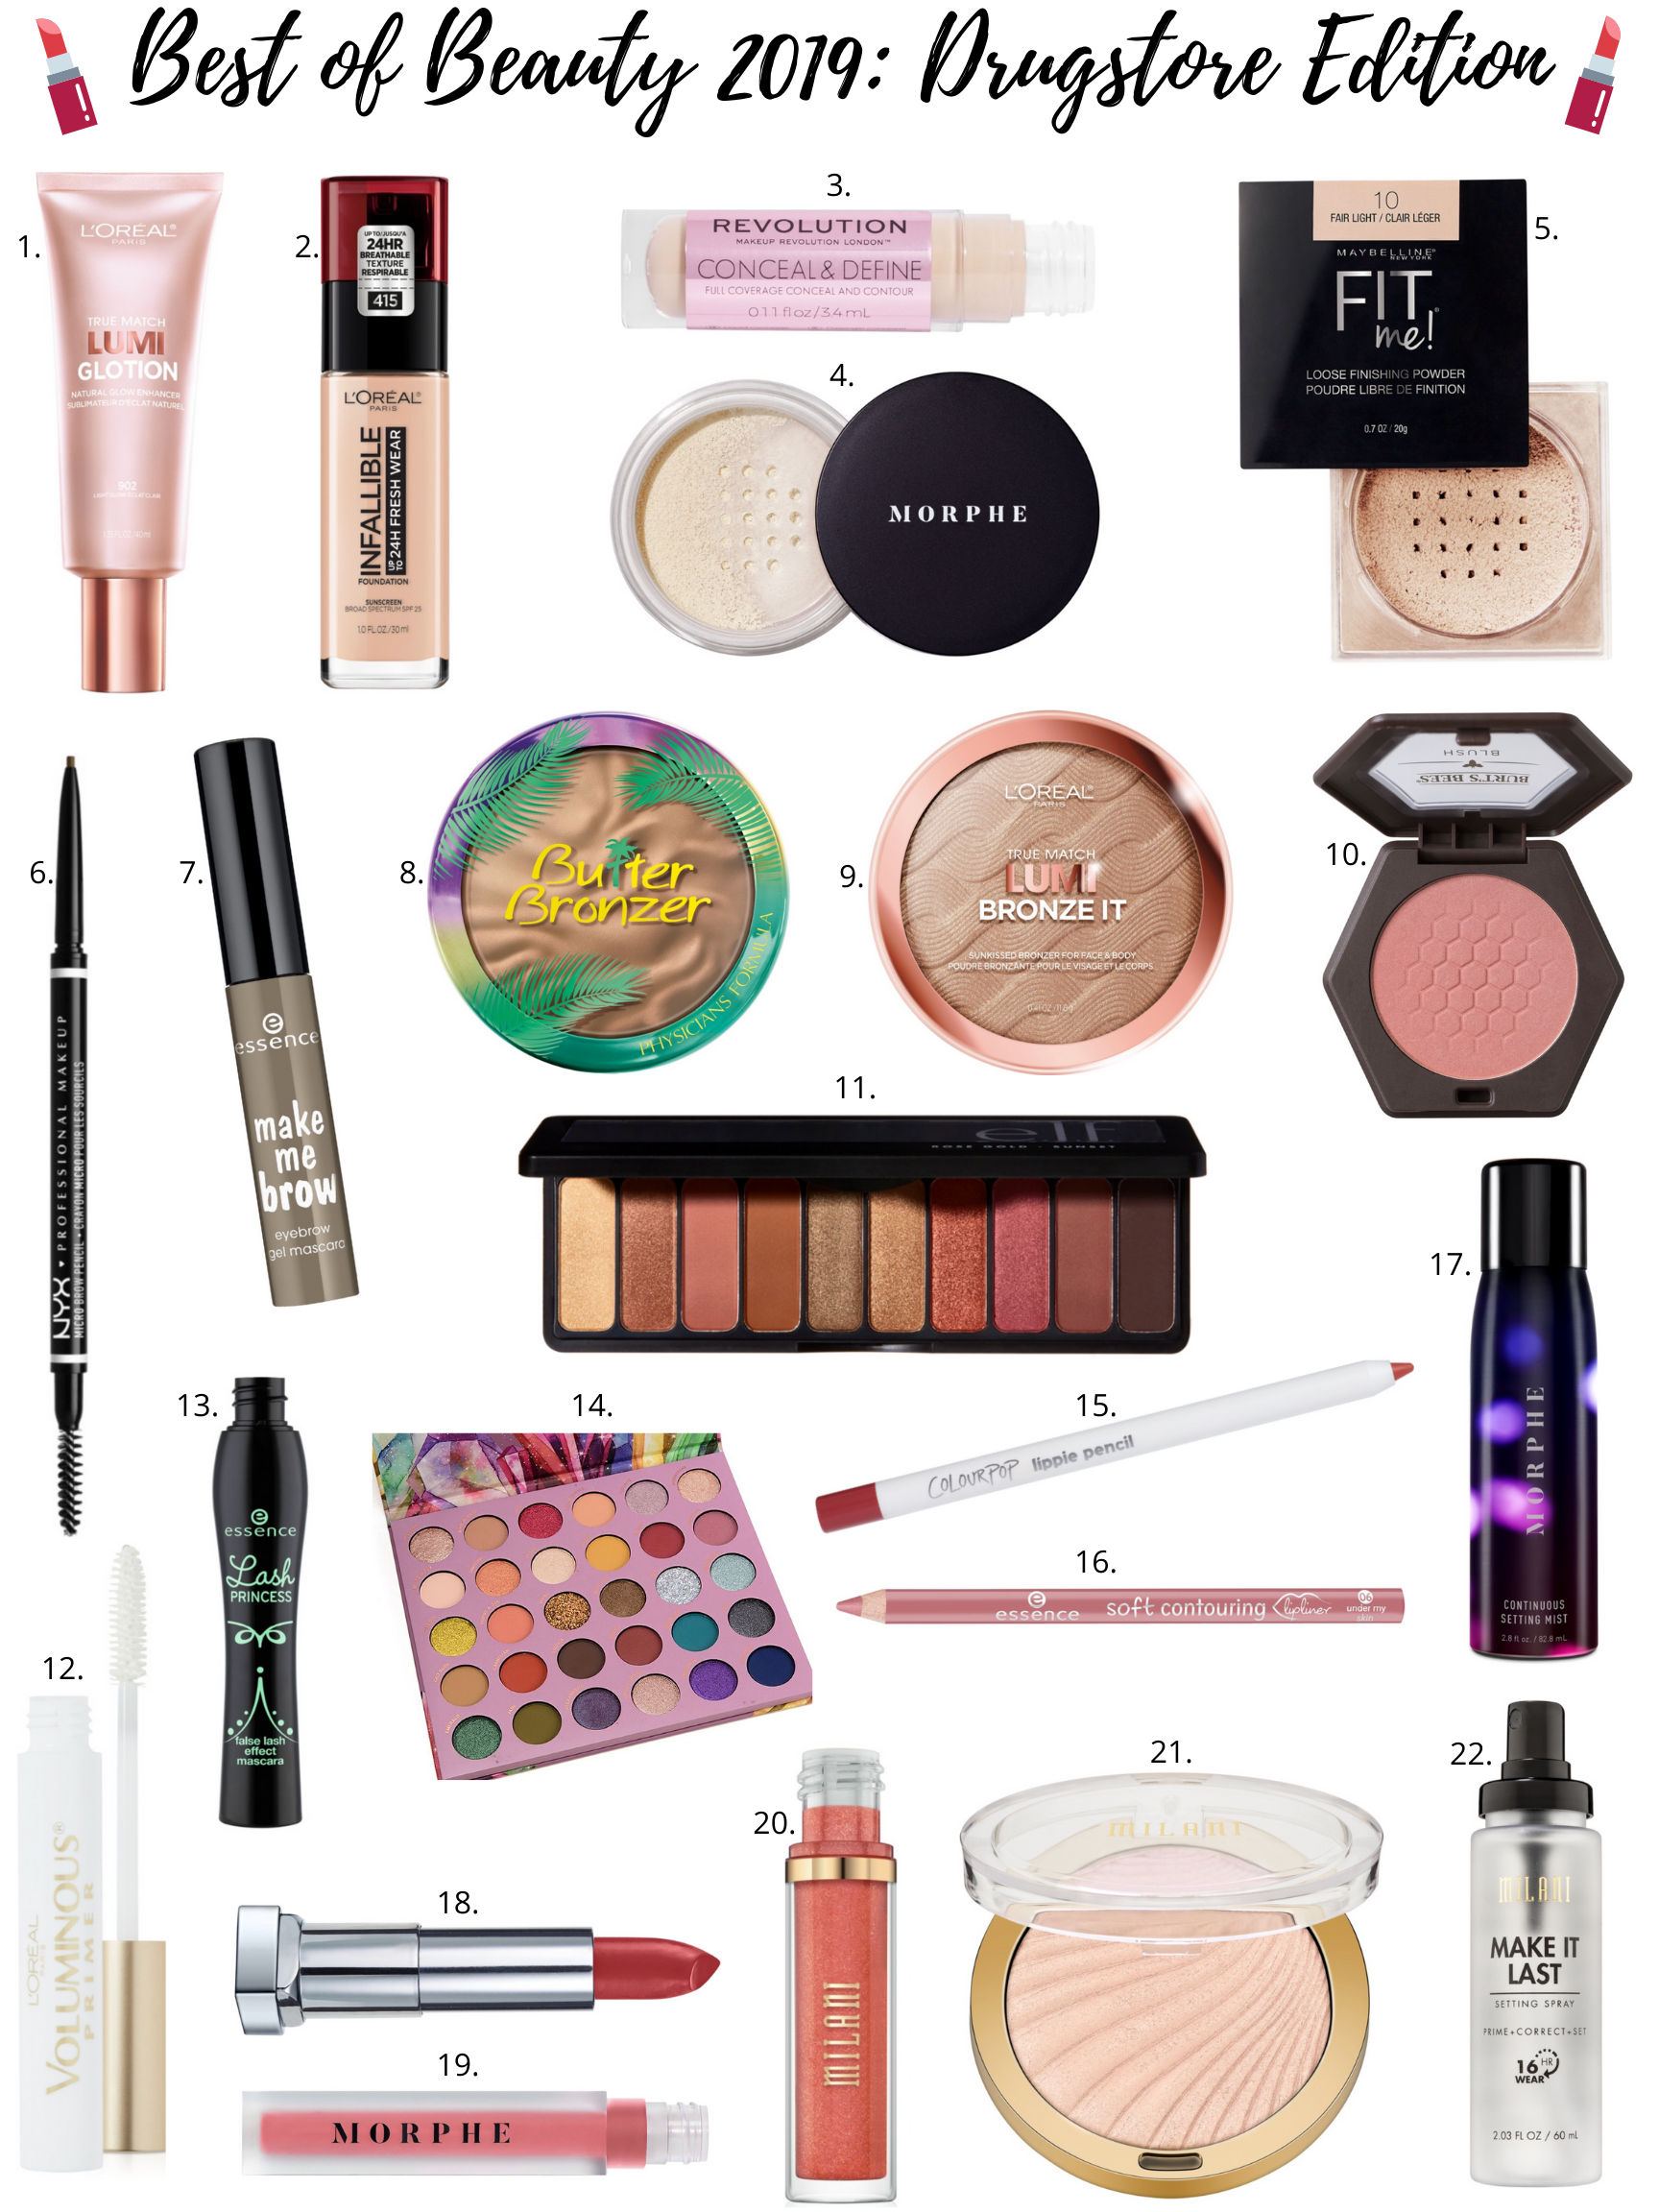 BEST OF BEAUTY 2019: DRUGSTORE EDITION